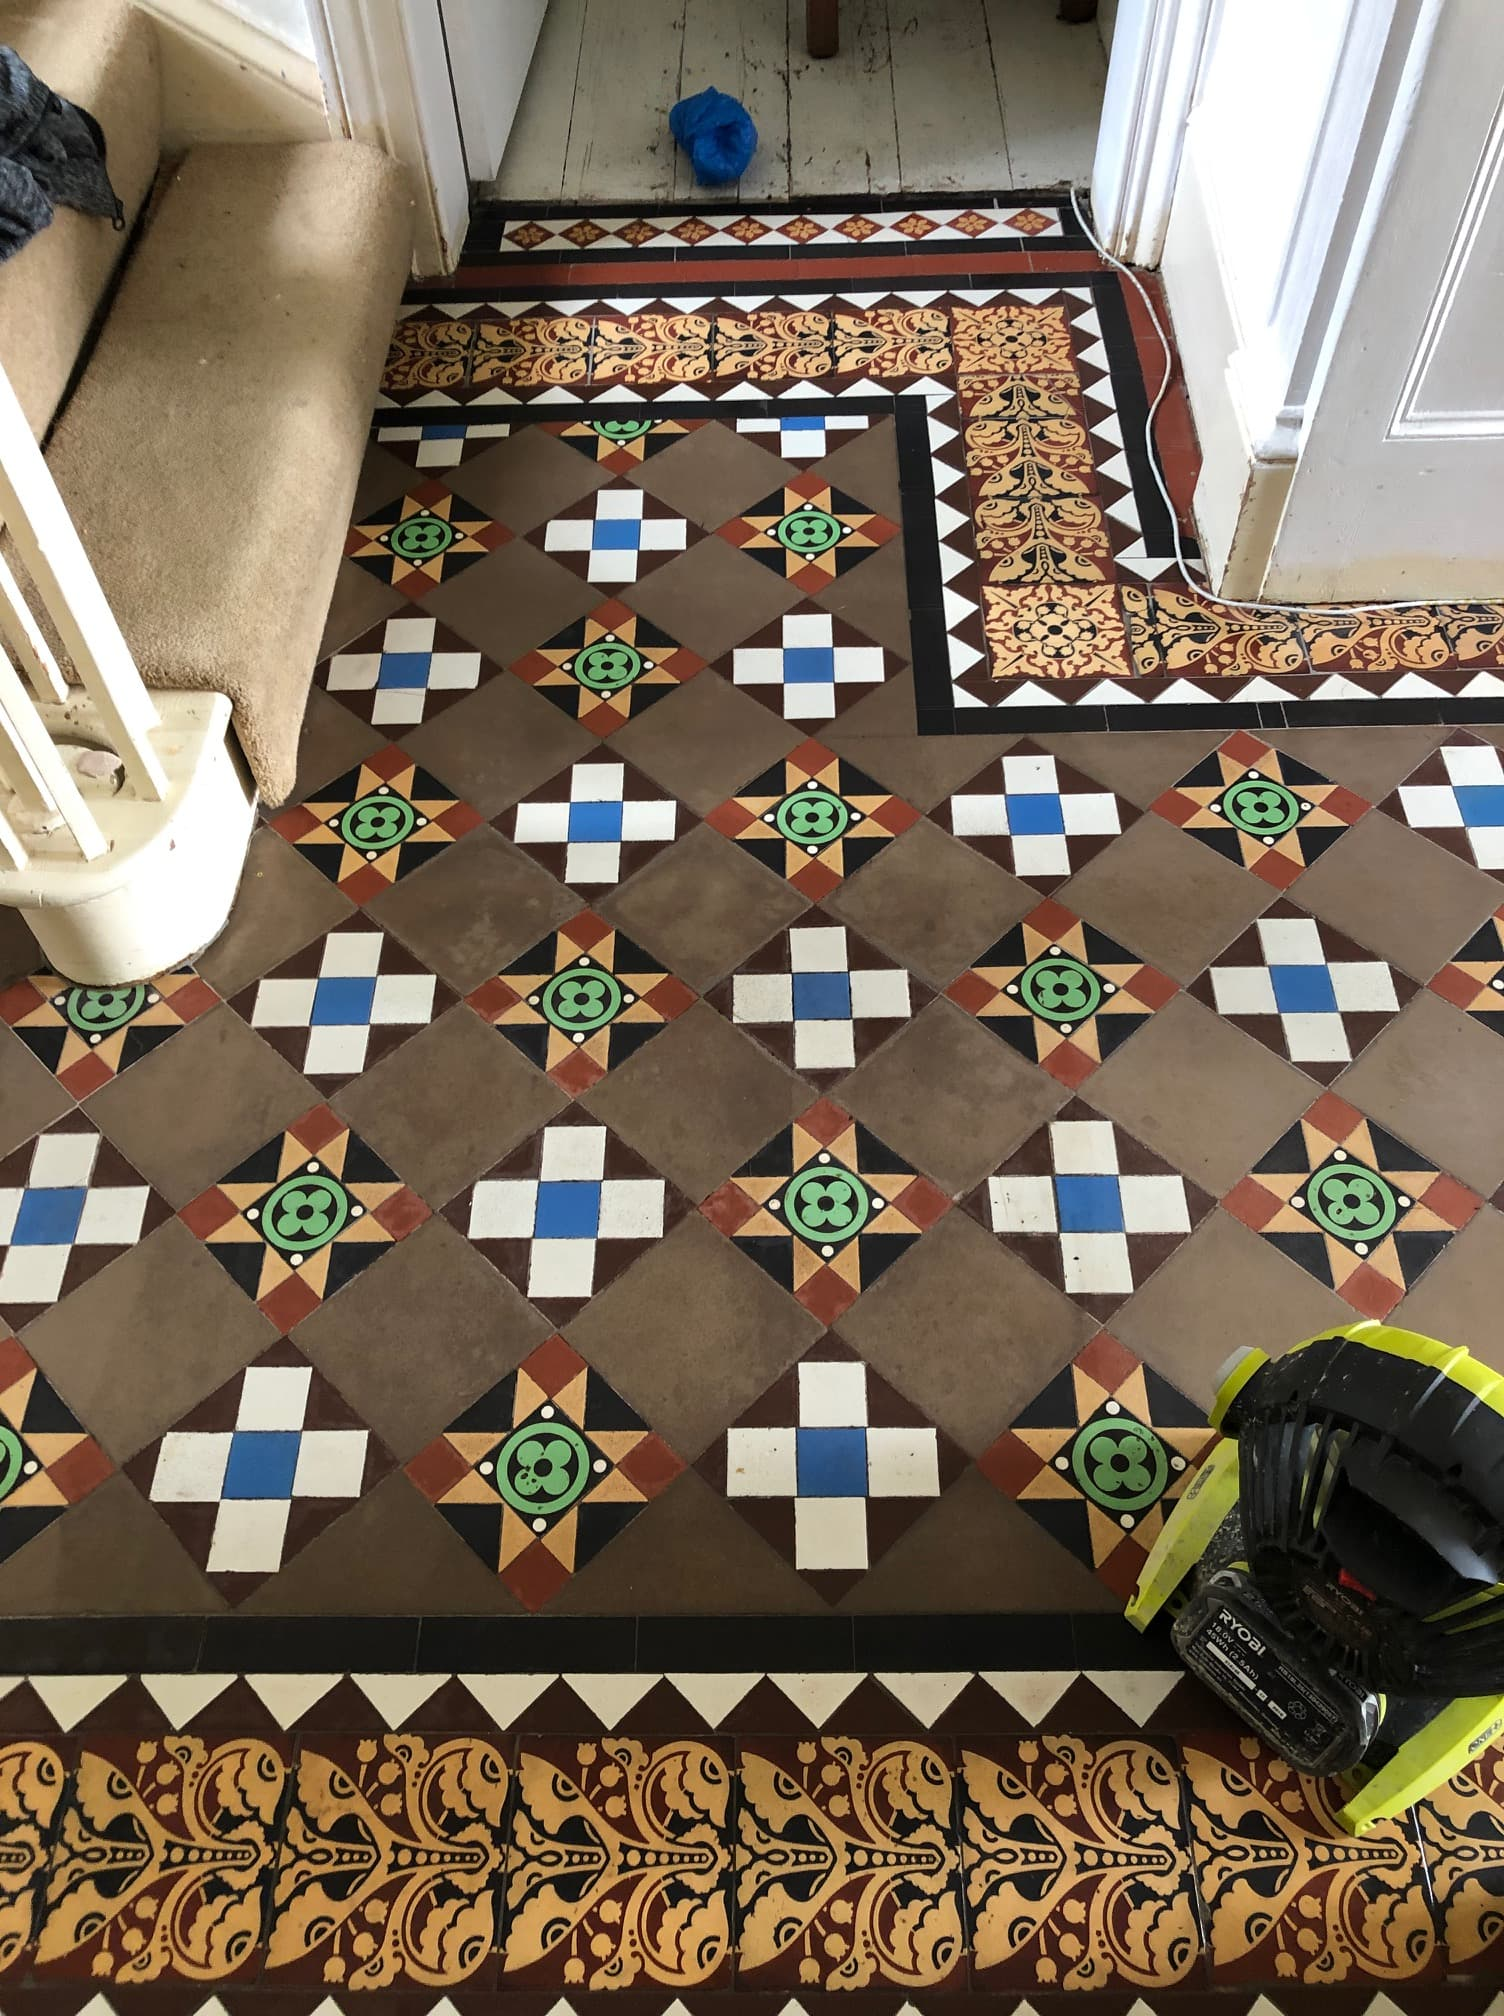 Geometric Victorian Tiled Hallway After Cleaning